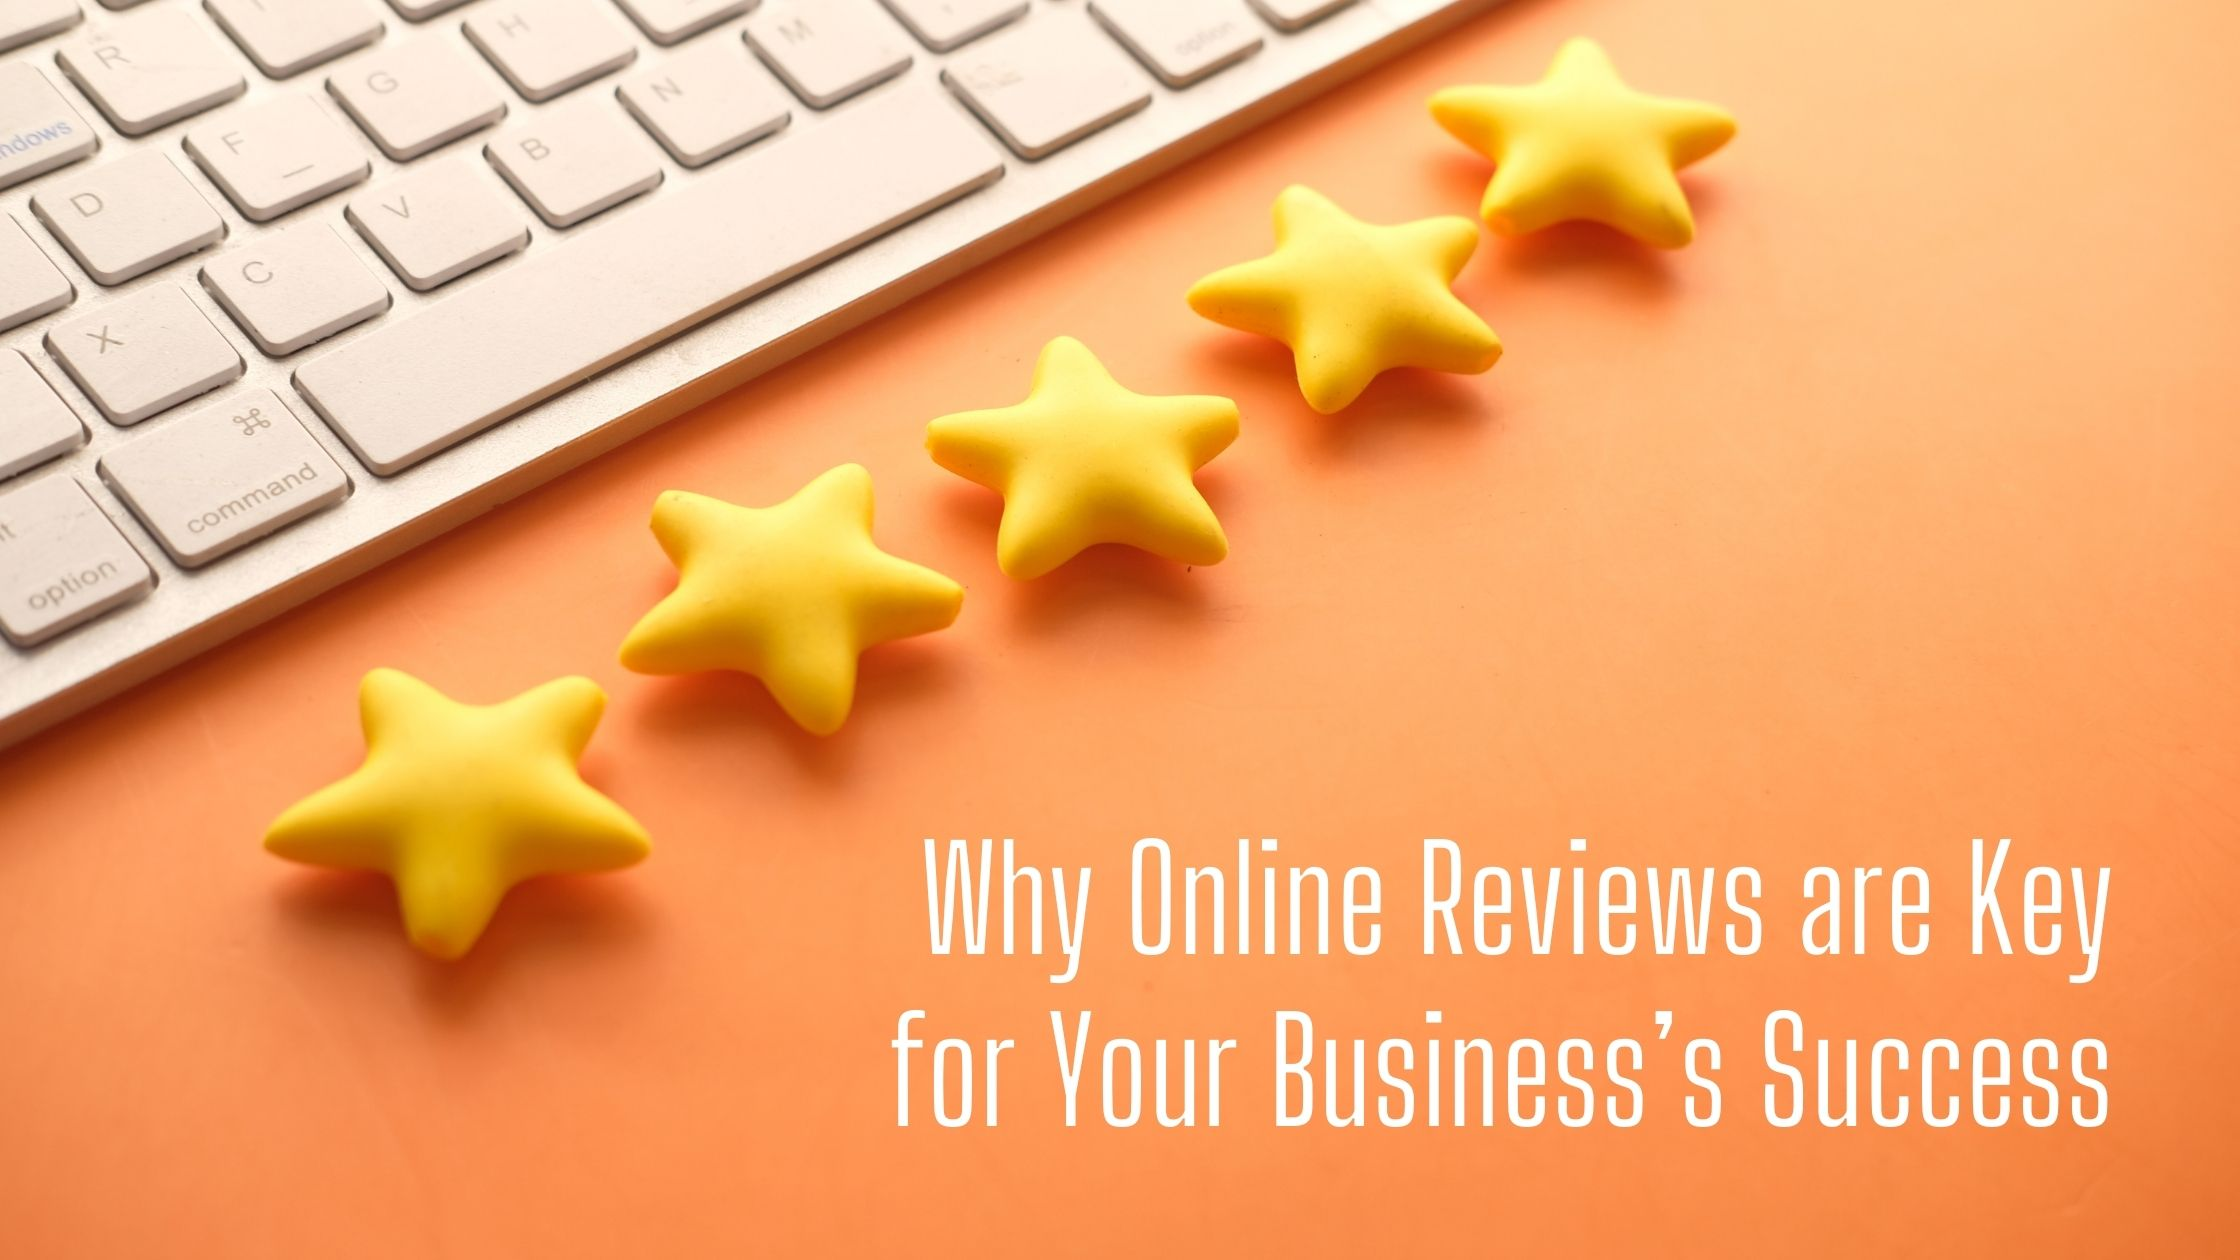 Why Online Reviews are Key for Your Business's Success